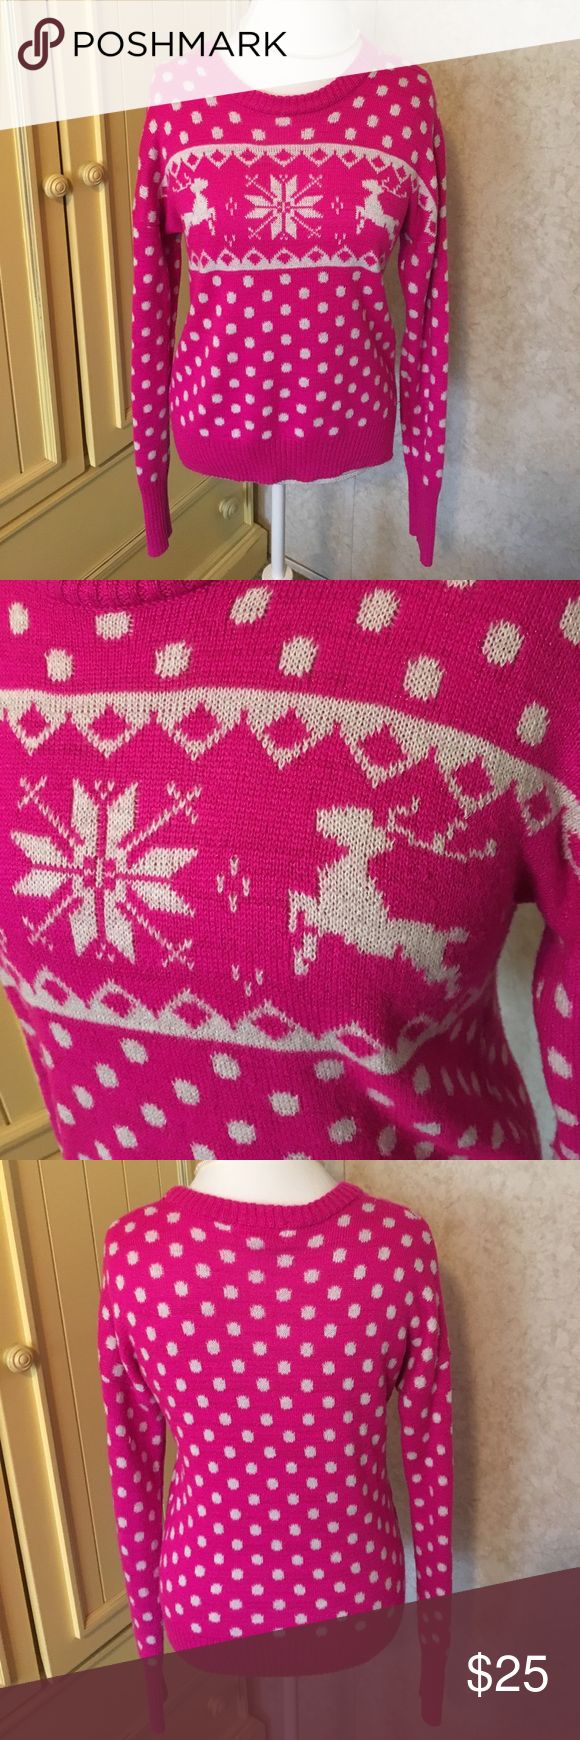 Pink and White Reindeer Sweater Pink and white reindeer sweater. Size XL. In great condition other than a little pilling on bottom of sleeve as pictured. Sweaters